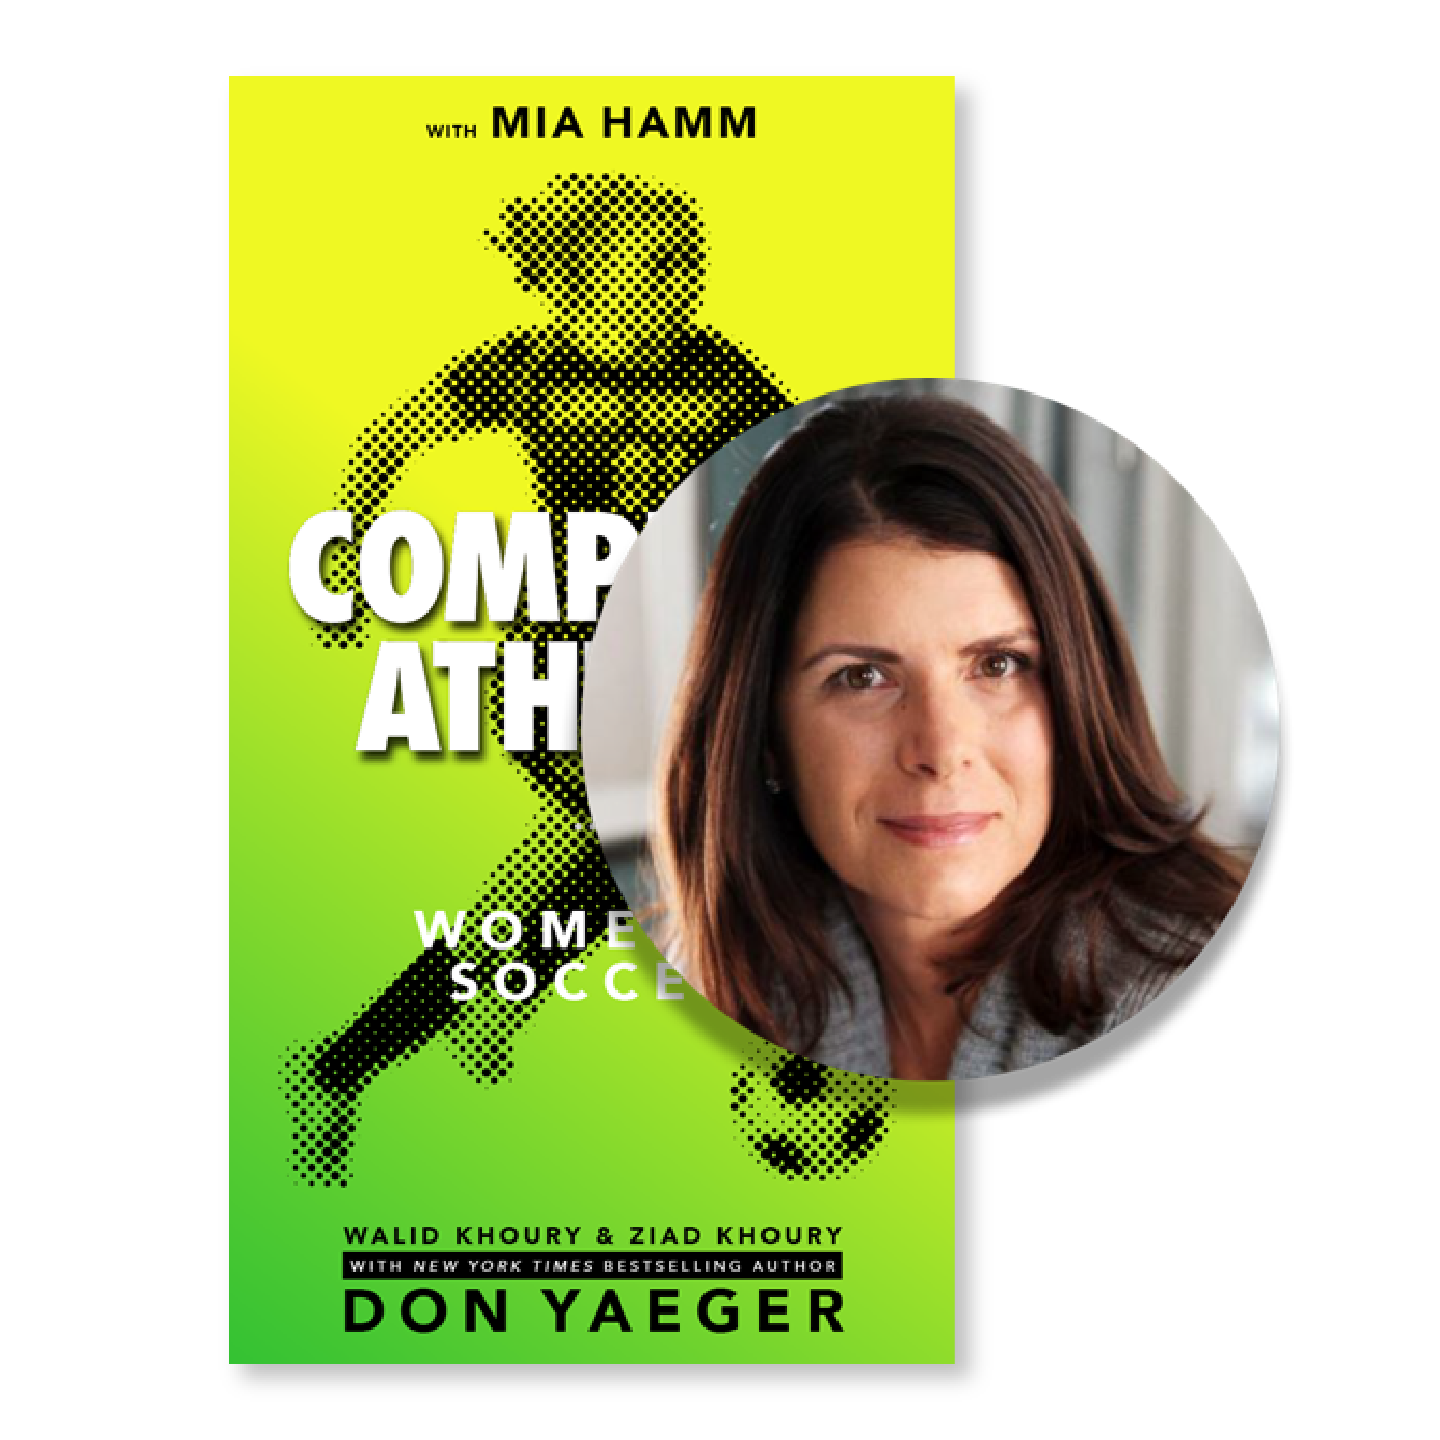 Women's Soccer - In Complete Athlete: Women's Soccer, get tips from the pros like Mia Hamm and 11-time NYT Bestseller Don Yaeger. This book highlights the idea that success is not determined solely by one's natural ability; it is also influenced by attitude and behavior, as well as how an athlete treats herself and others, both on and off the field of play.